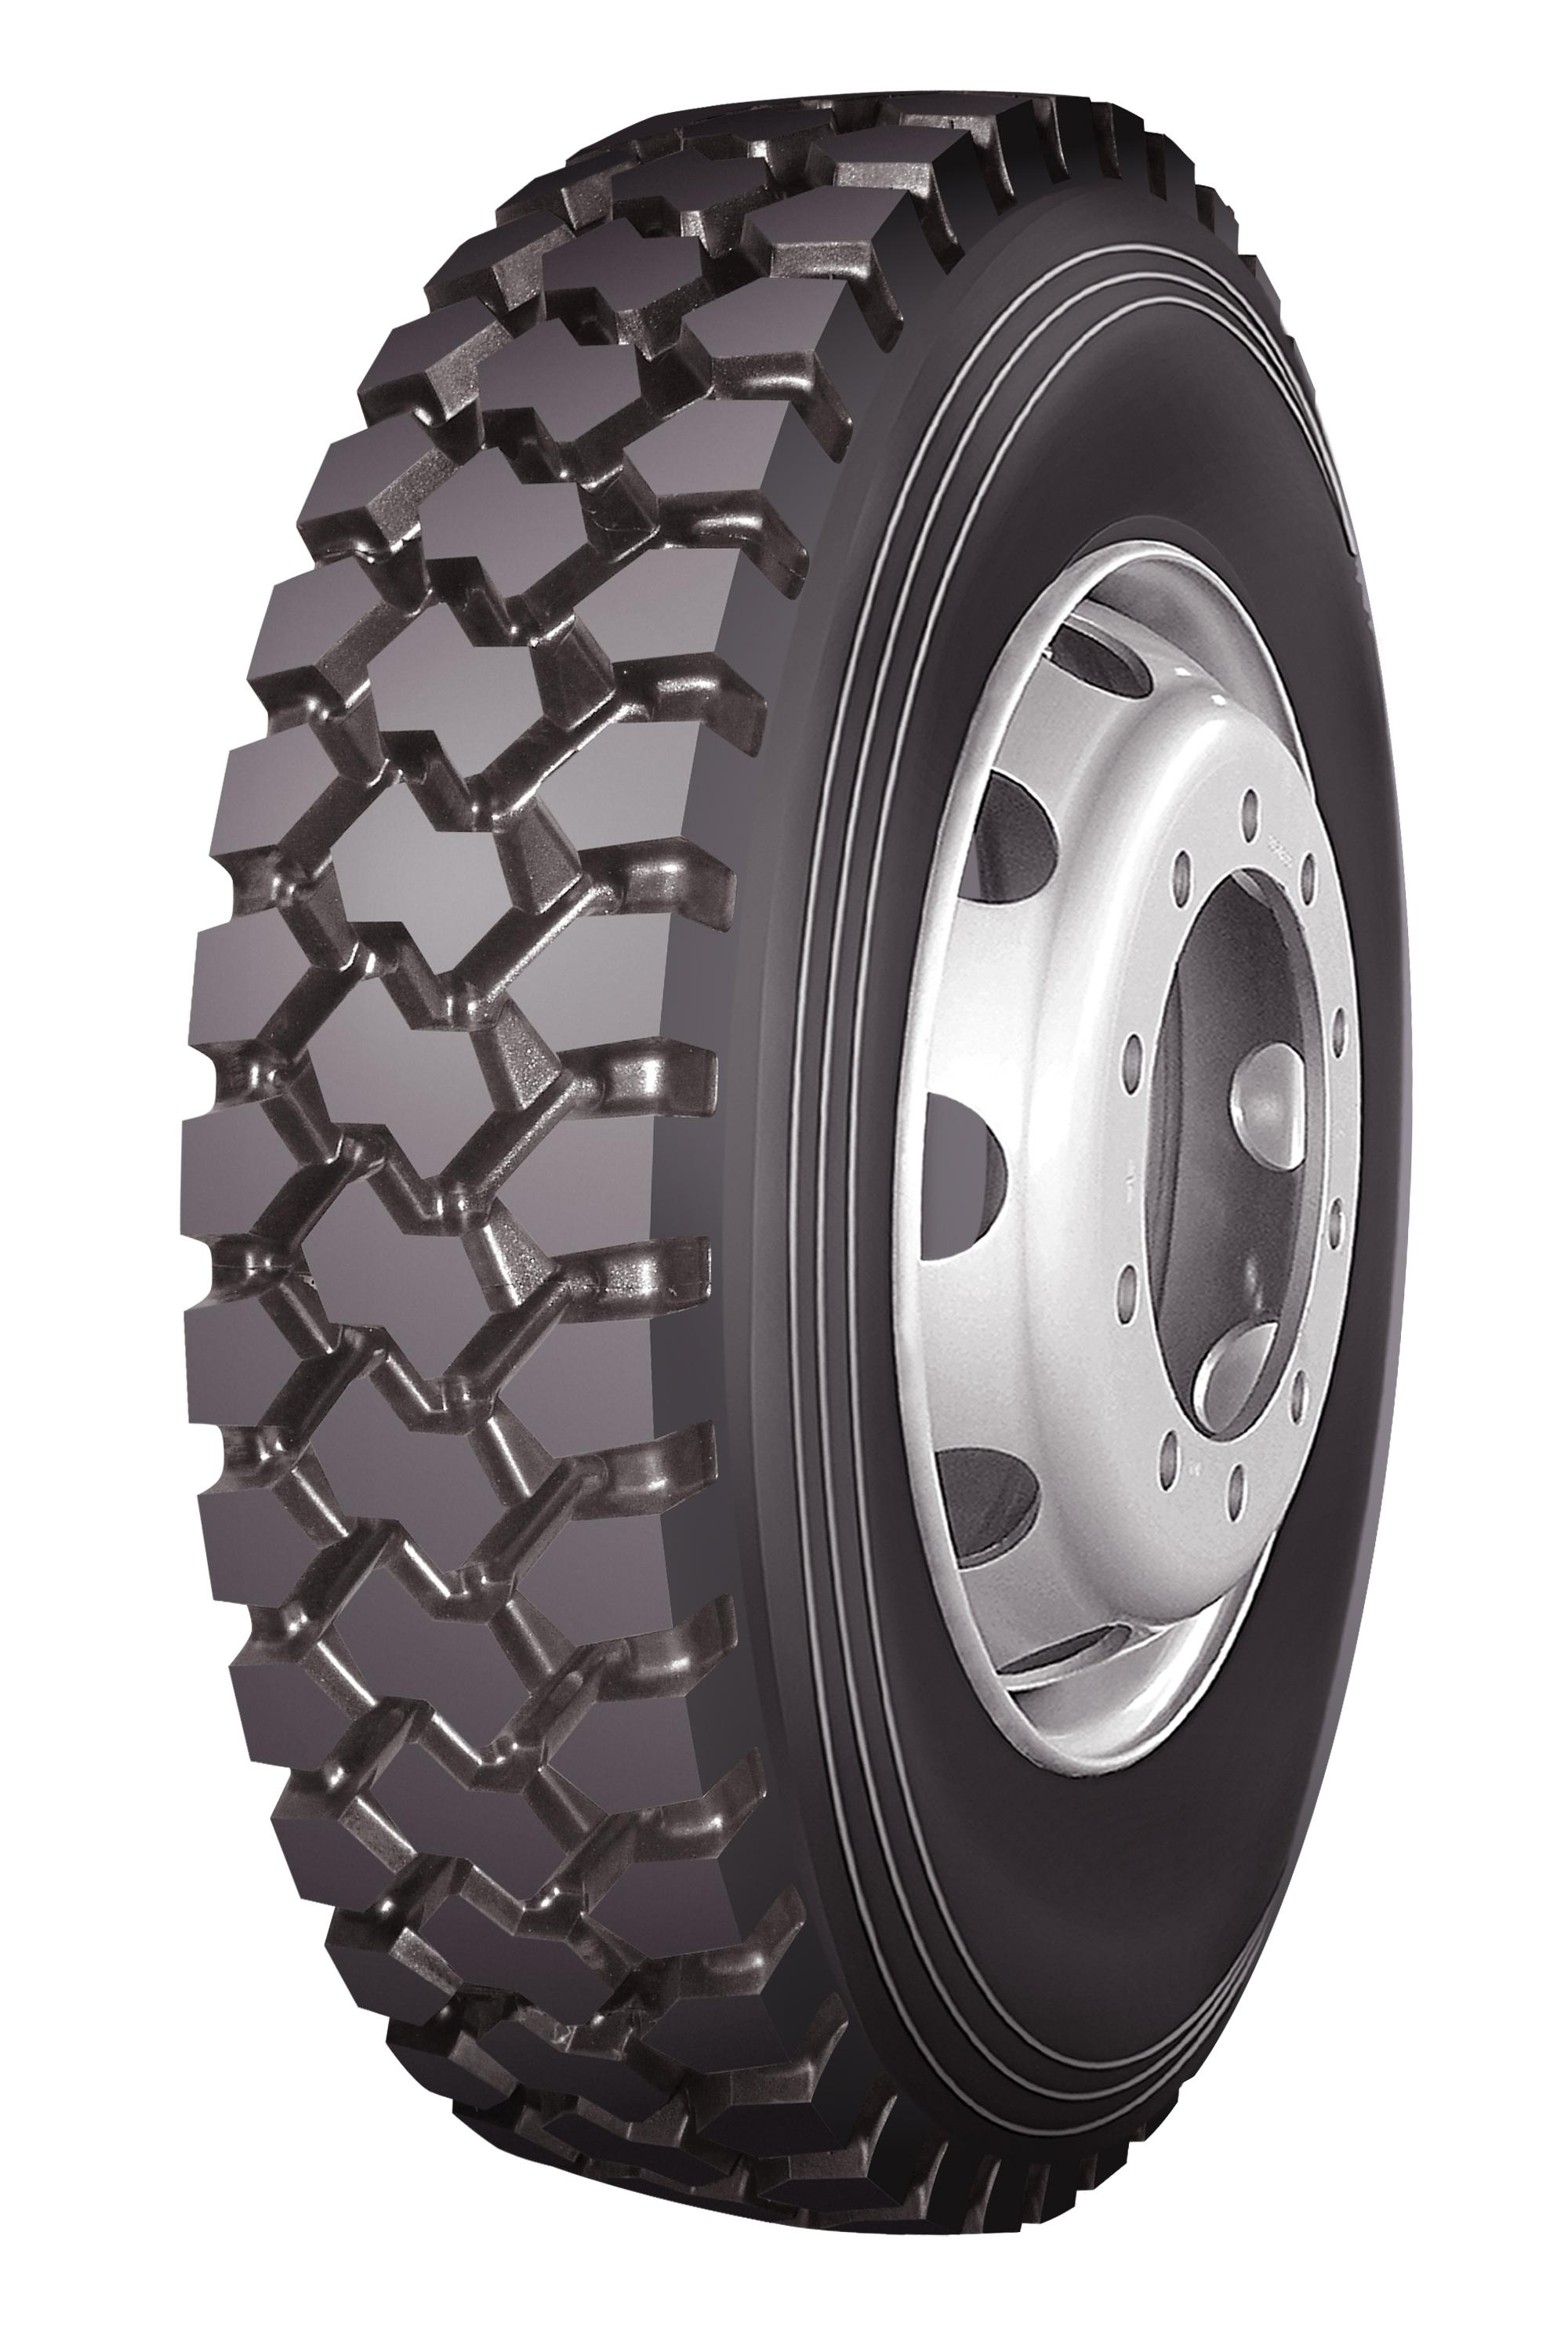 LM305 ALL STEEL RADIAL TRUCK AND BUS TYRES